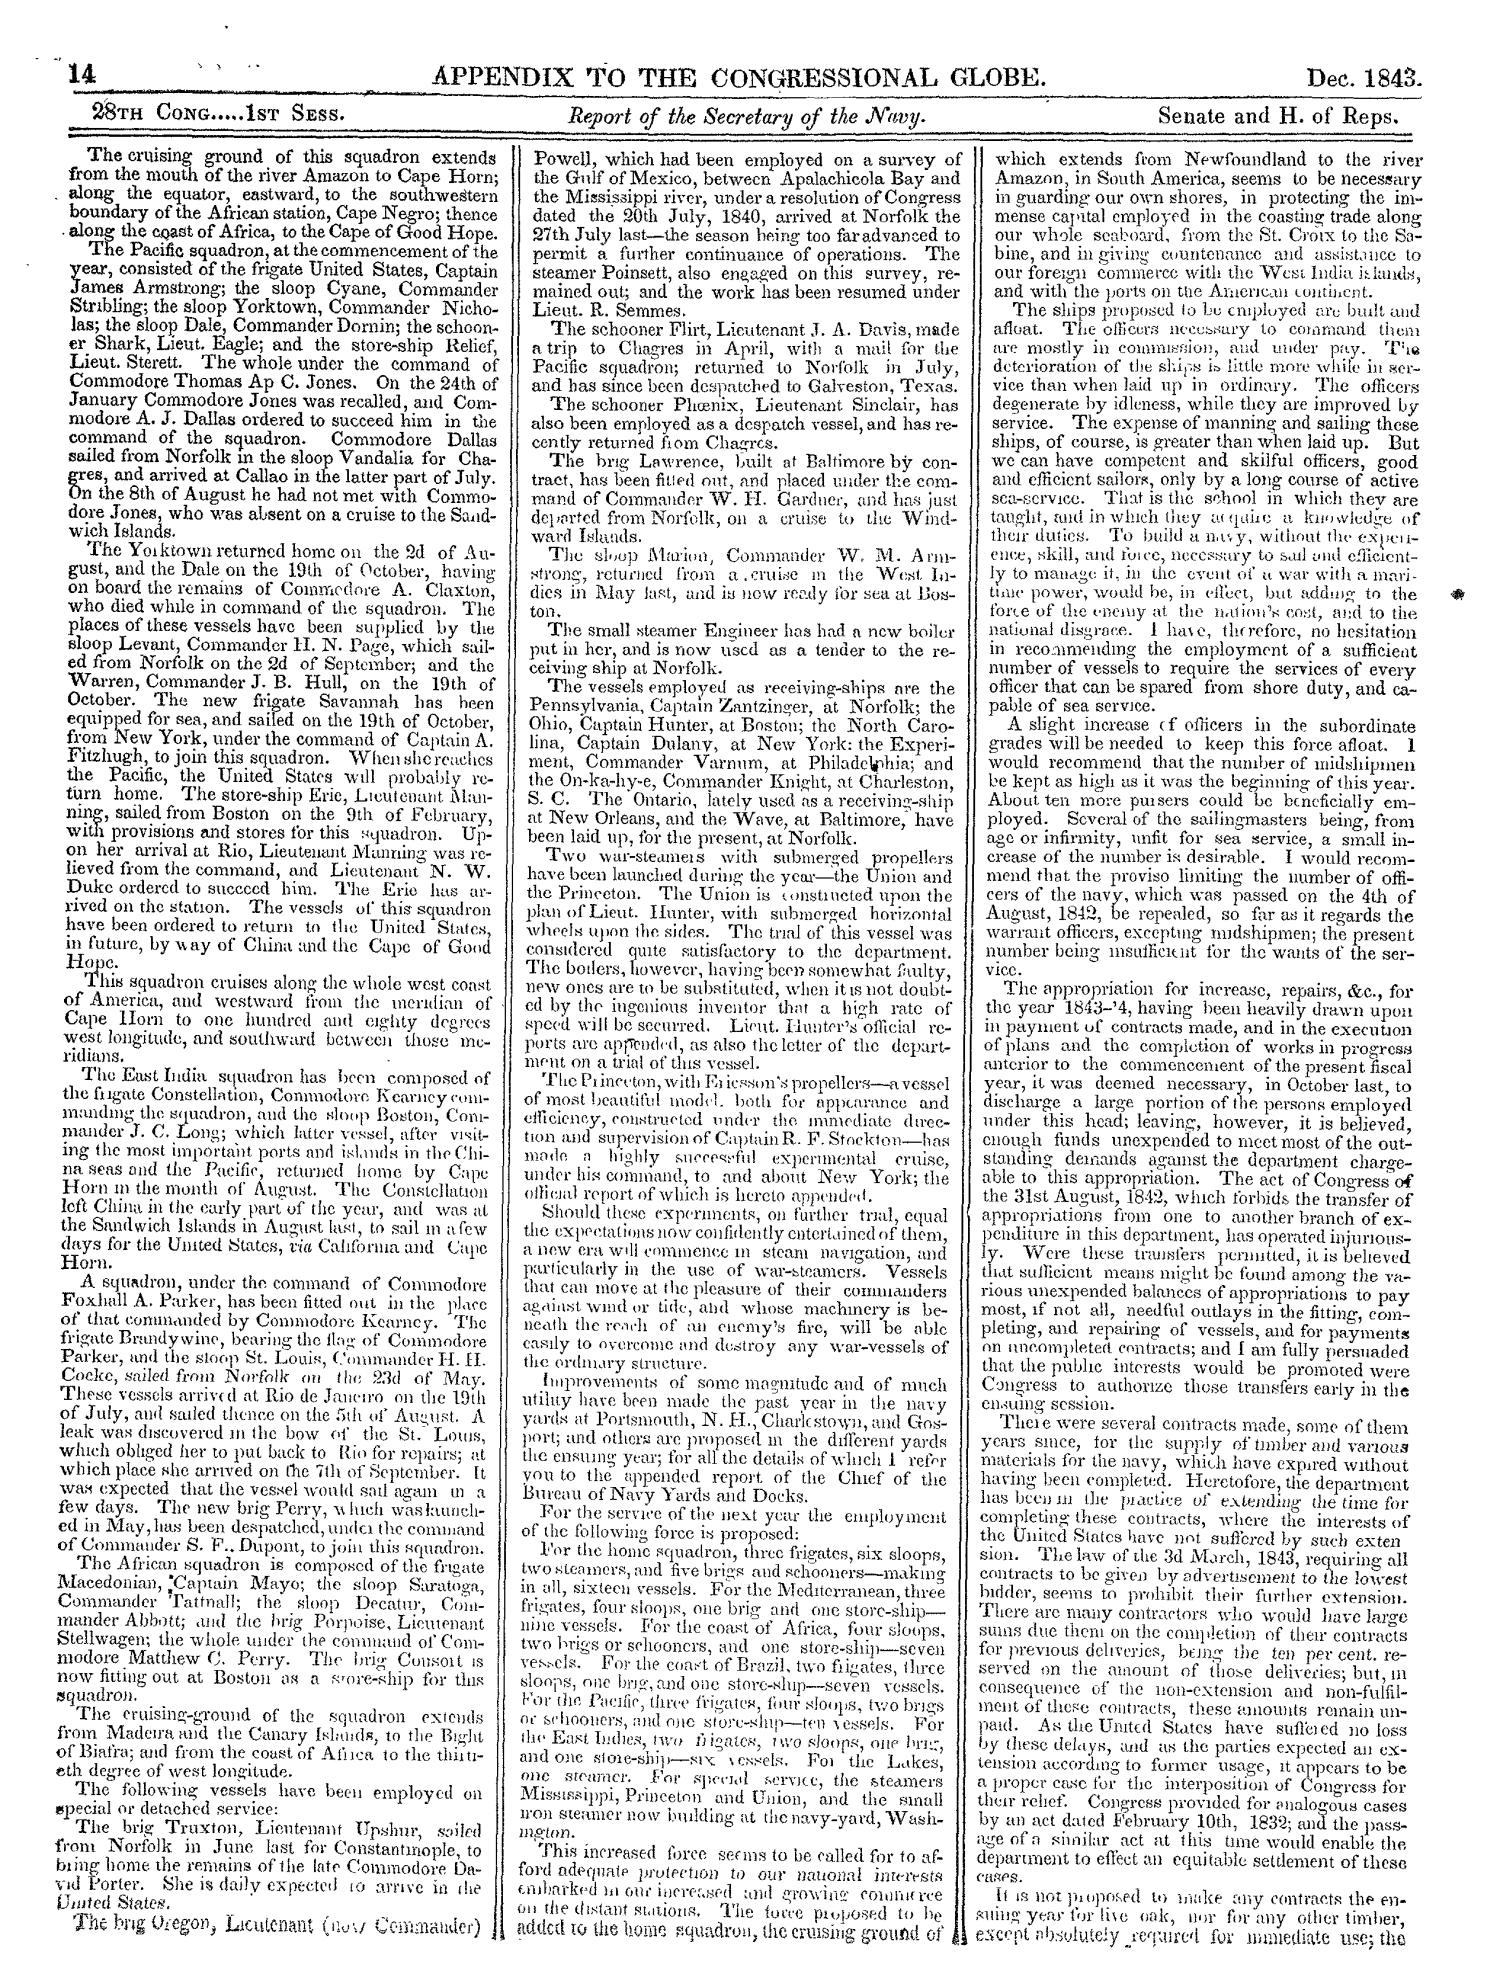 The Congressional Globe, Volume 13, Part 2: Twenty-Eighth Congress, First Session                                                                                                      14